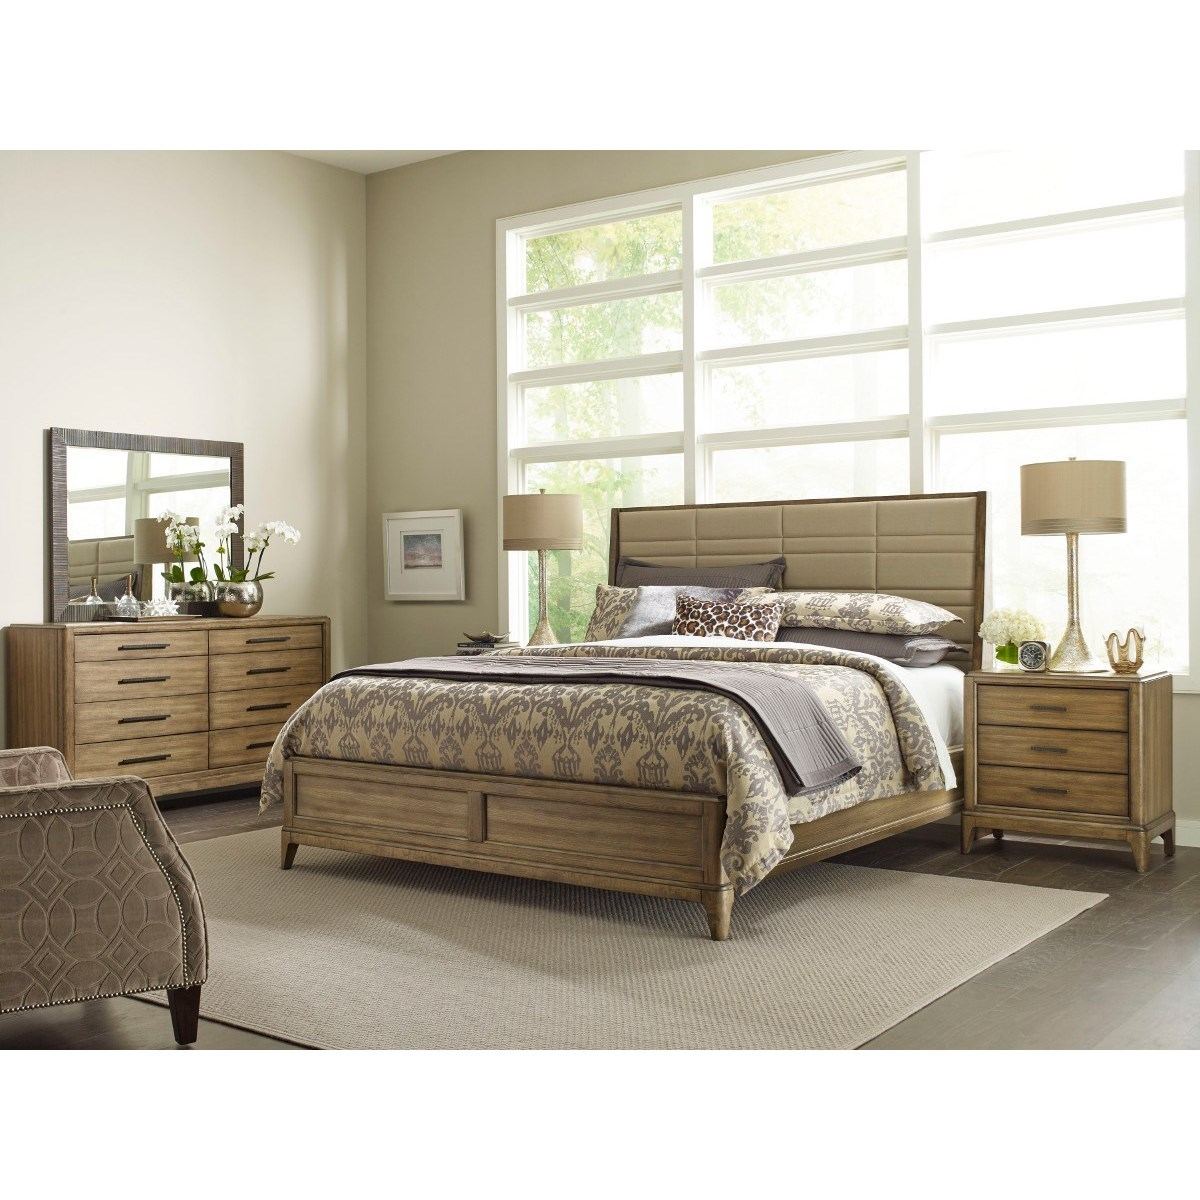 American Drew EVOKE  California King Bedroom Group - Item Number: 509 CK Bedroom Group 2